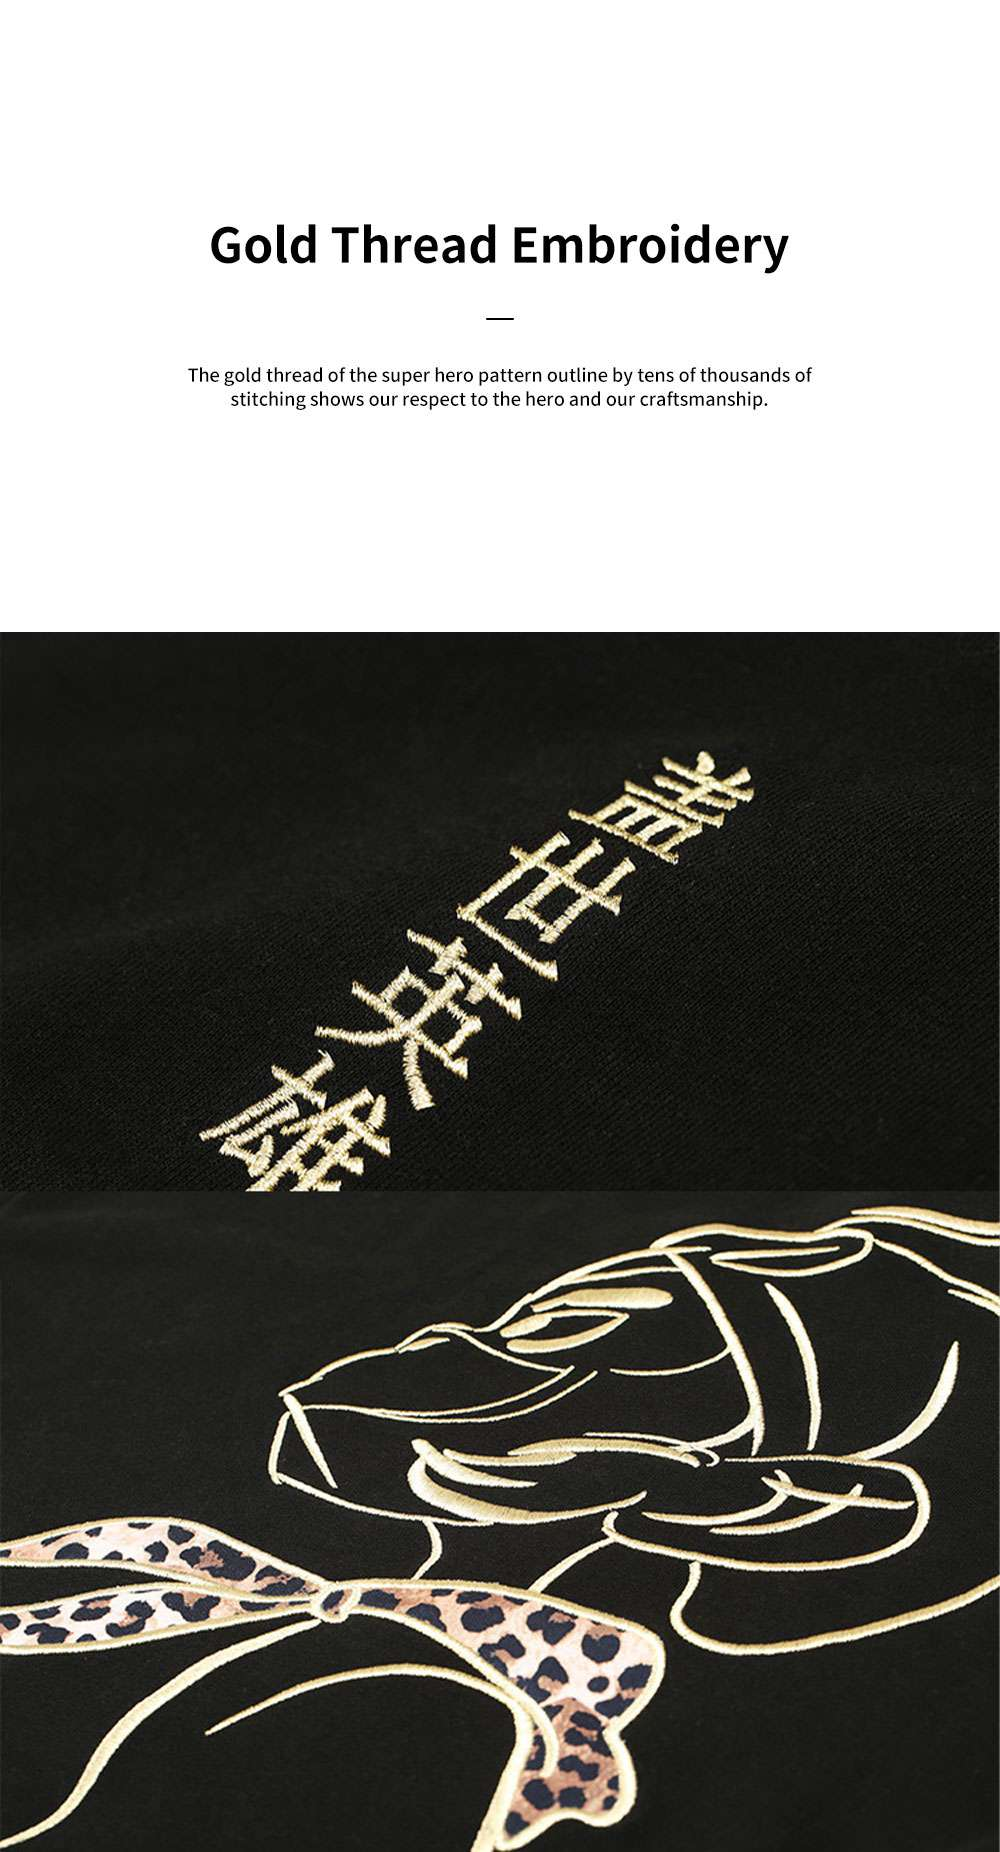 ELFSACK Embroidery Super Hero Hoodie Jacket Fashionable Long Sleeve Coat for Lady Wear Cotton Hoodie Jacket Spring Autumn Winter 5